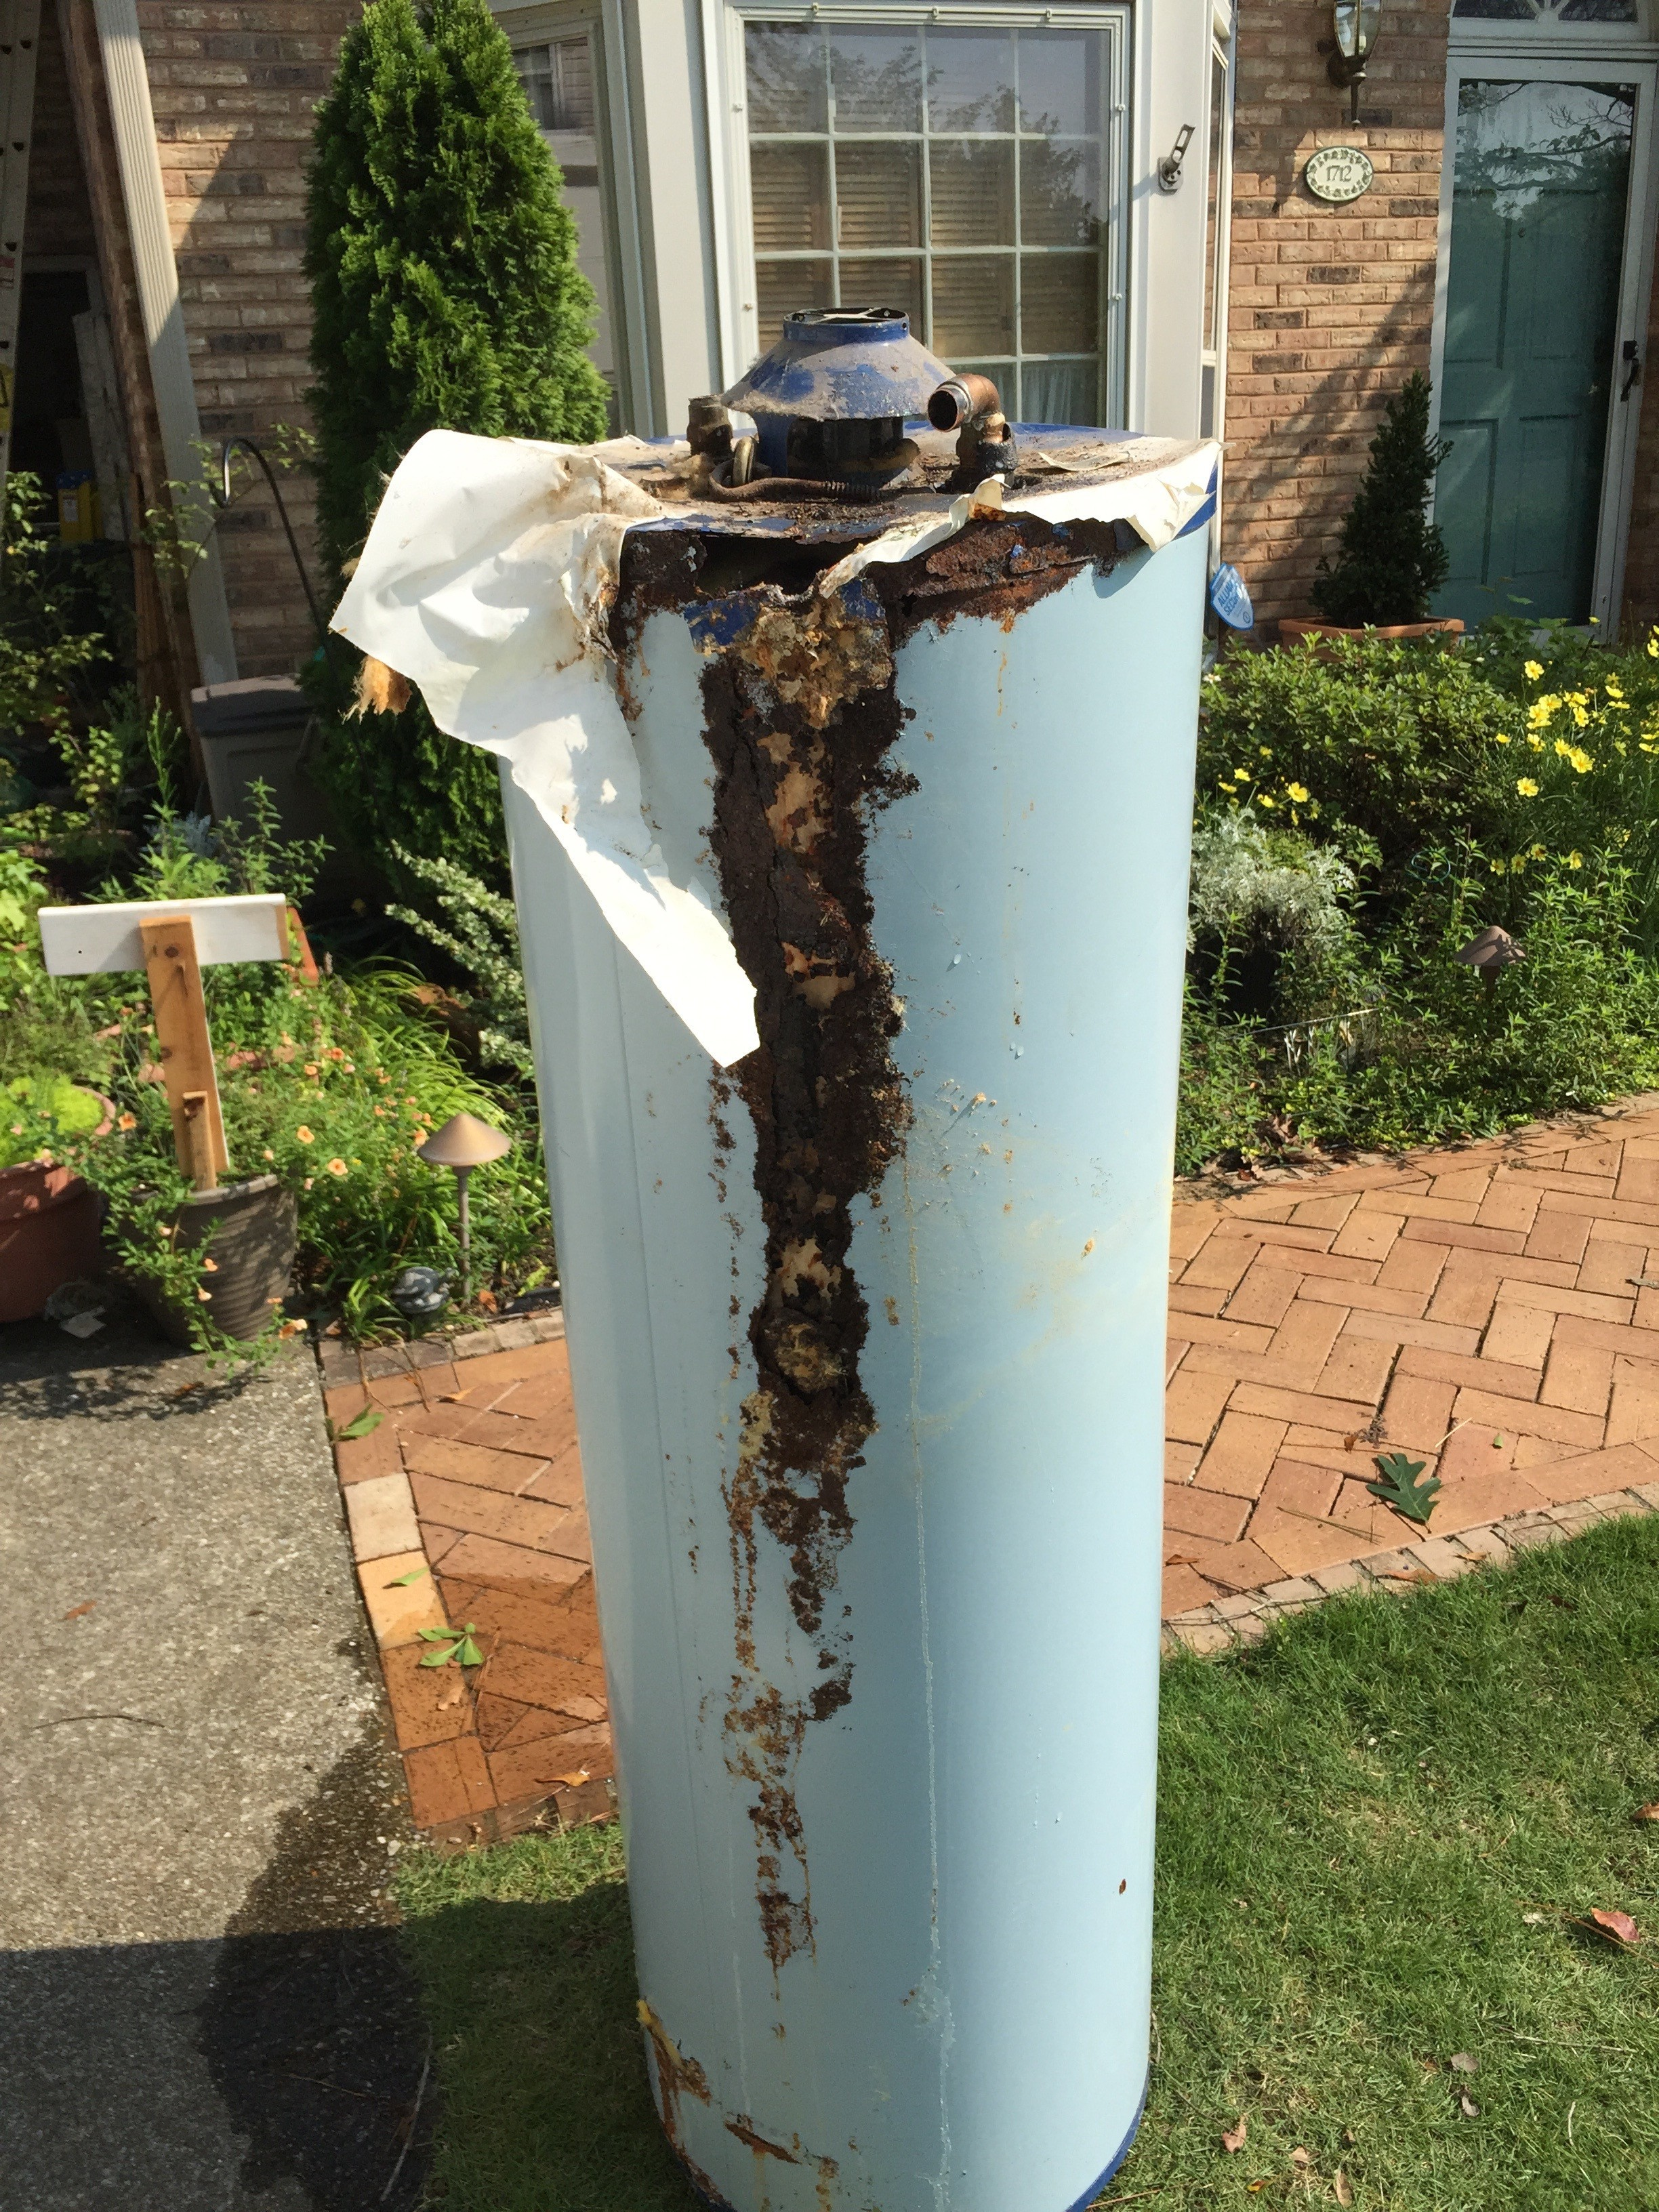 Do you think this water heater is leaking?